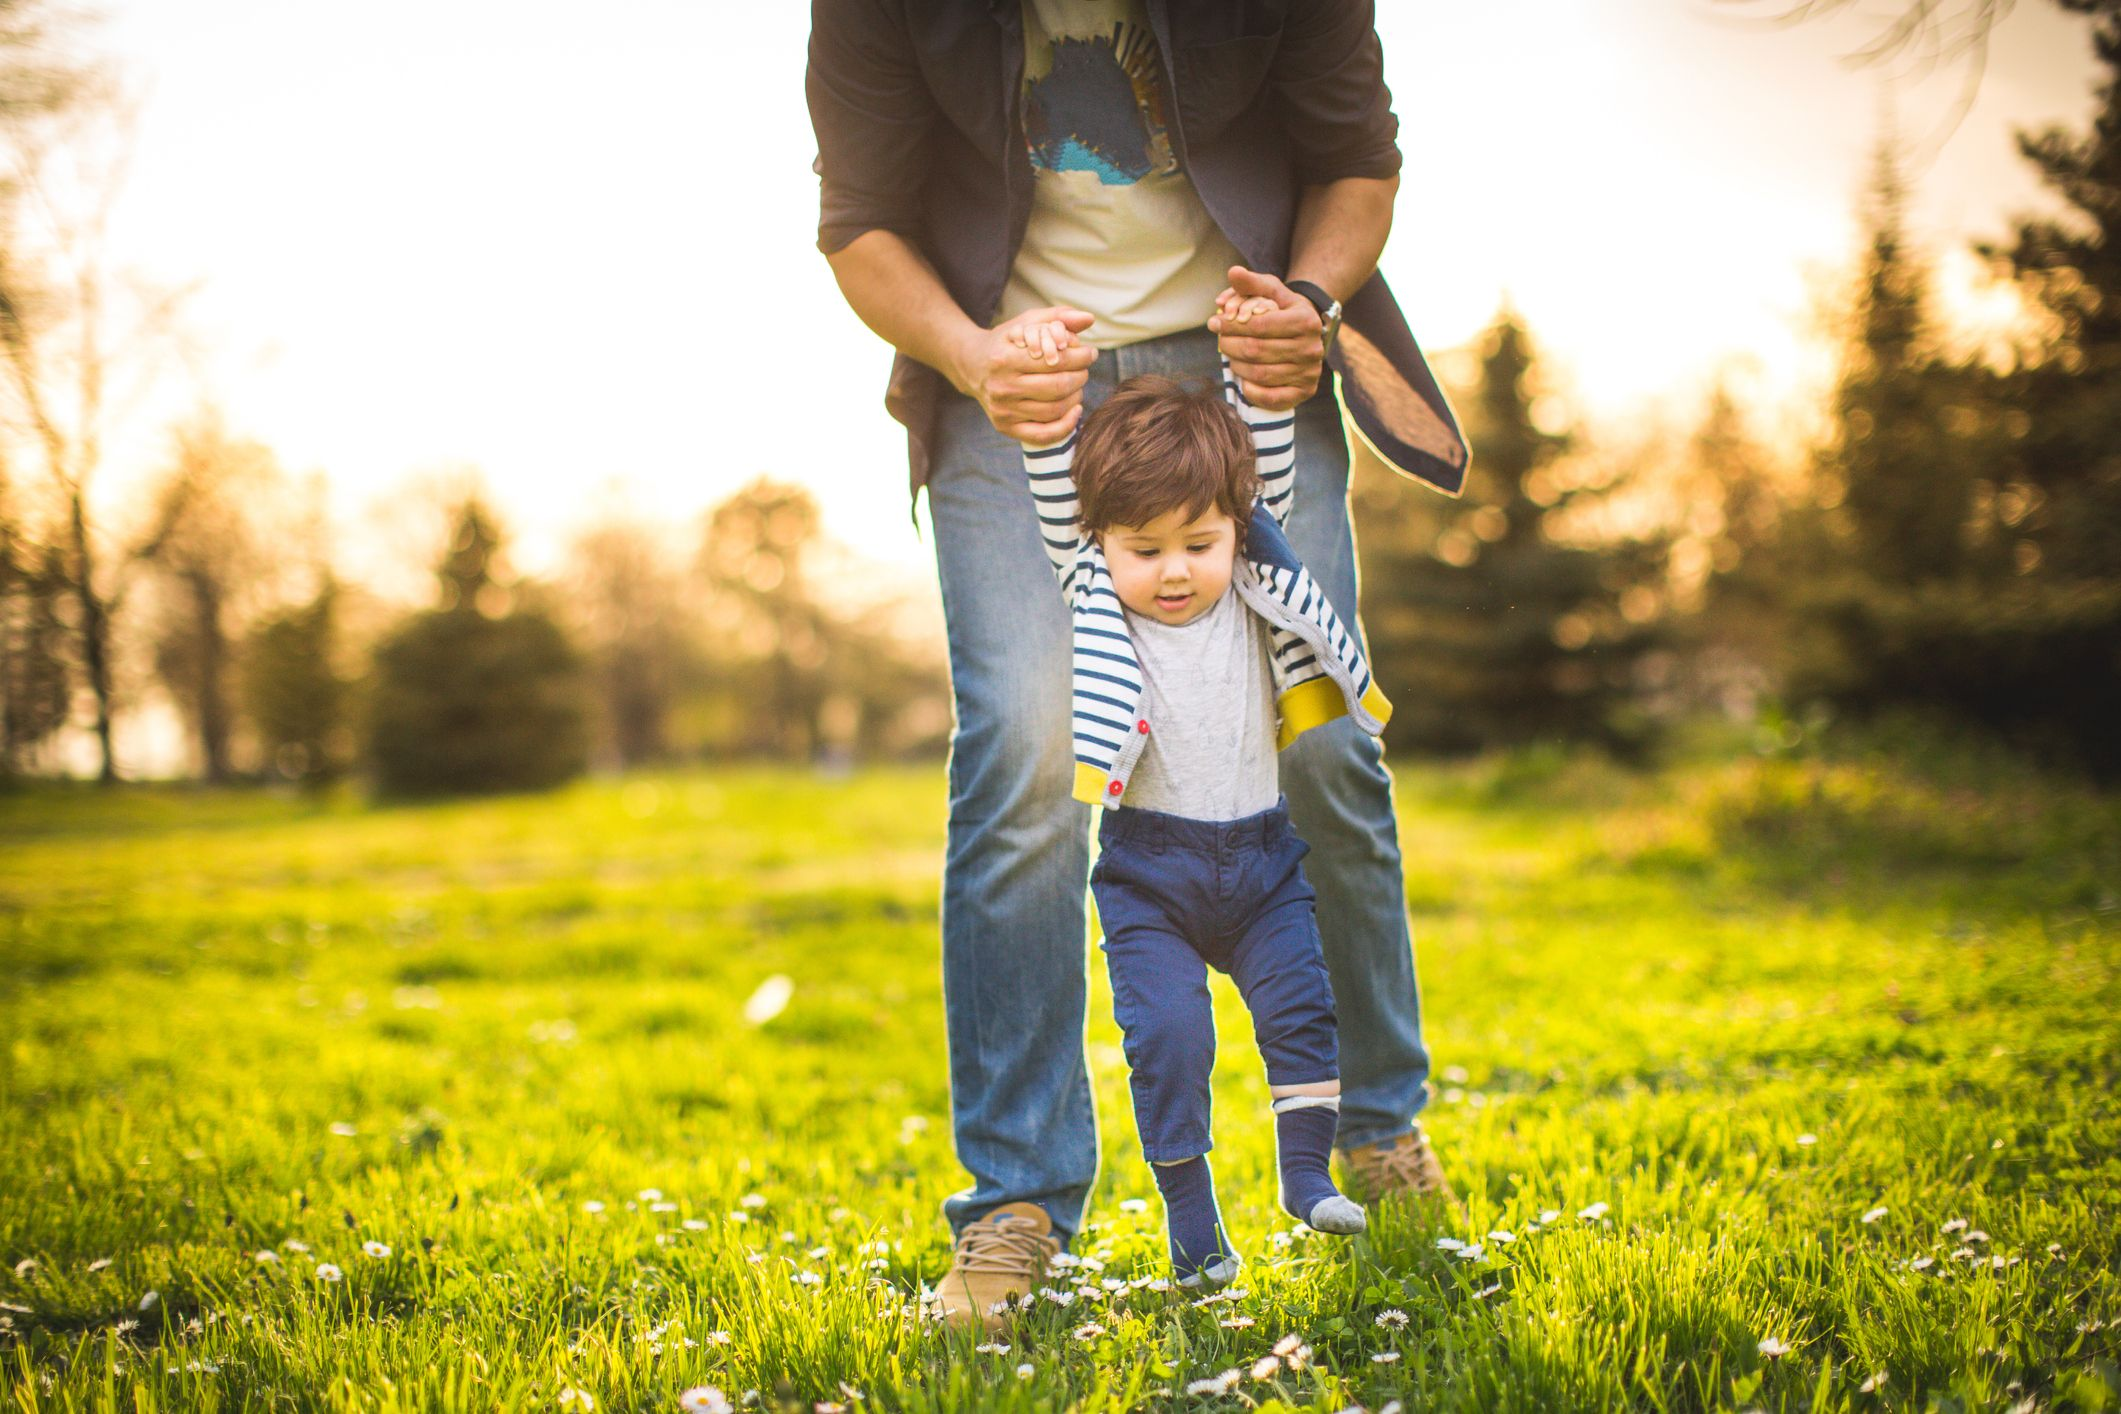 20 Best Gifts for New Dads 2019 - First Father's Day Ideas